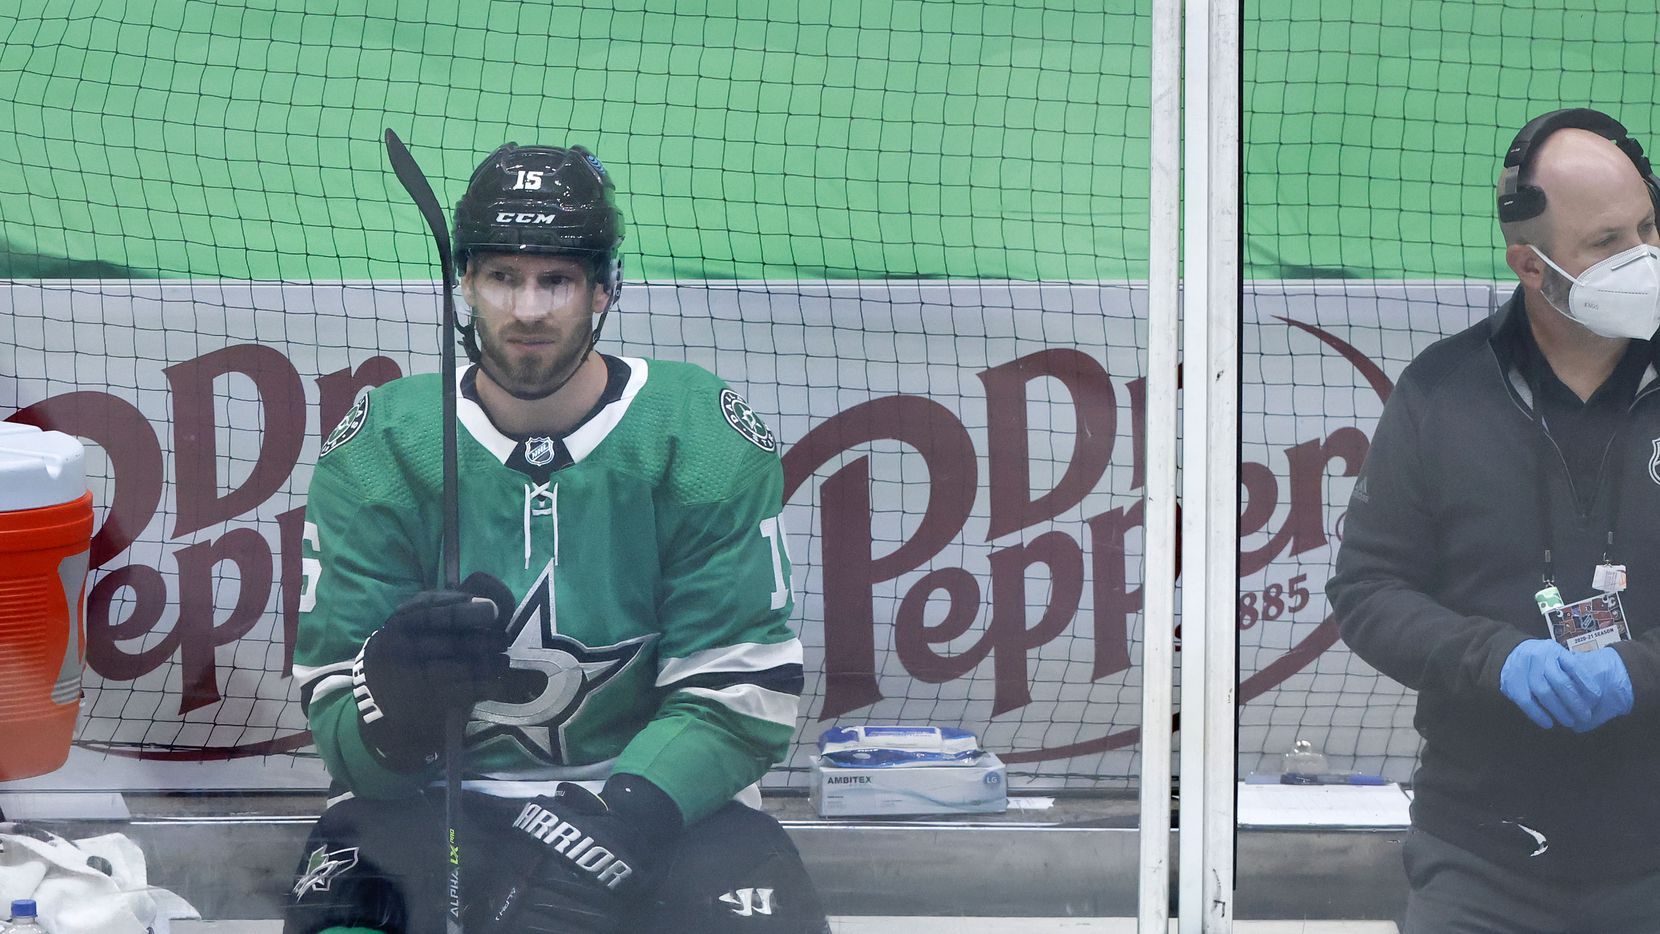 Dallas Stars left wing Blake Comeau (15) spends time in the penalty box during the first period against the Carolina Hurricanes at the American Airlines Center in Dallas, Tuesday, April 27, 2021. (Tom Fox/The Dallas Morning News)